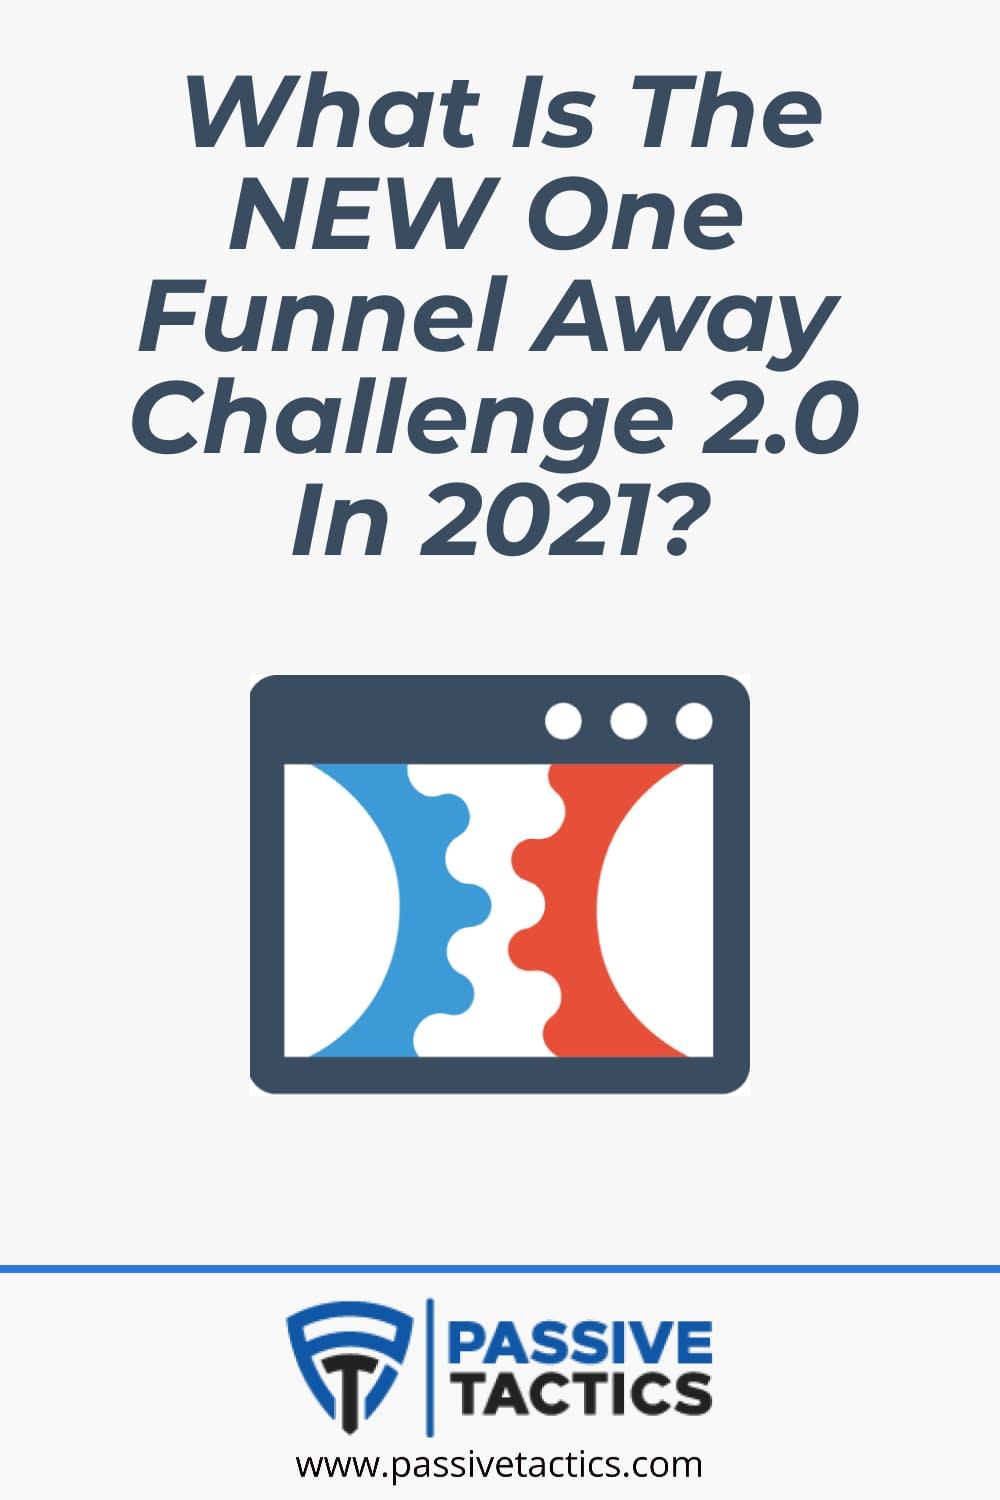 One Funnel Away Challenge: What Is NEW In 2021?